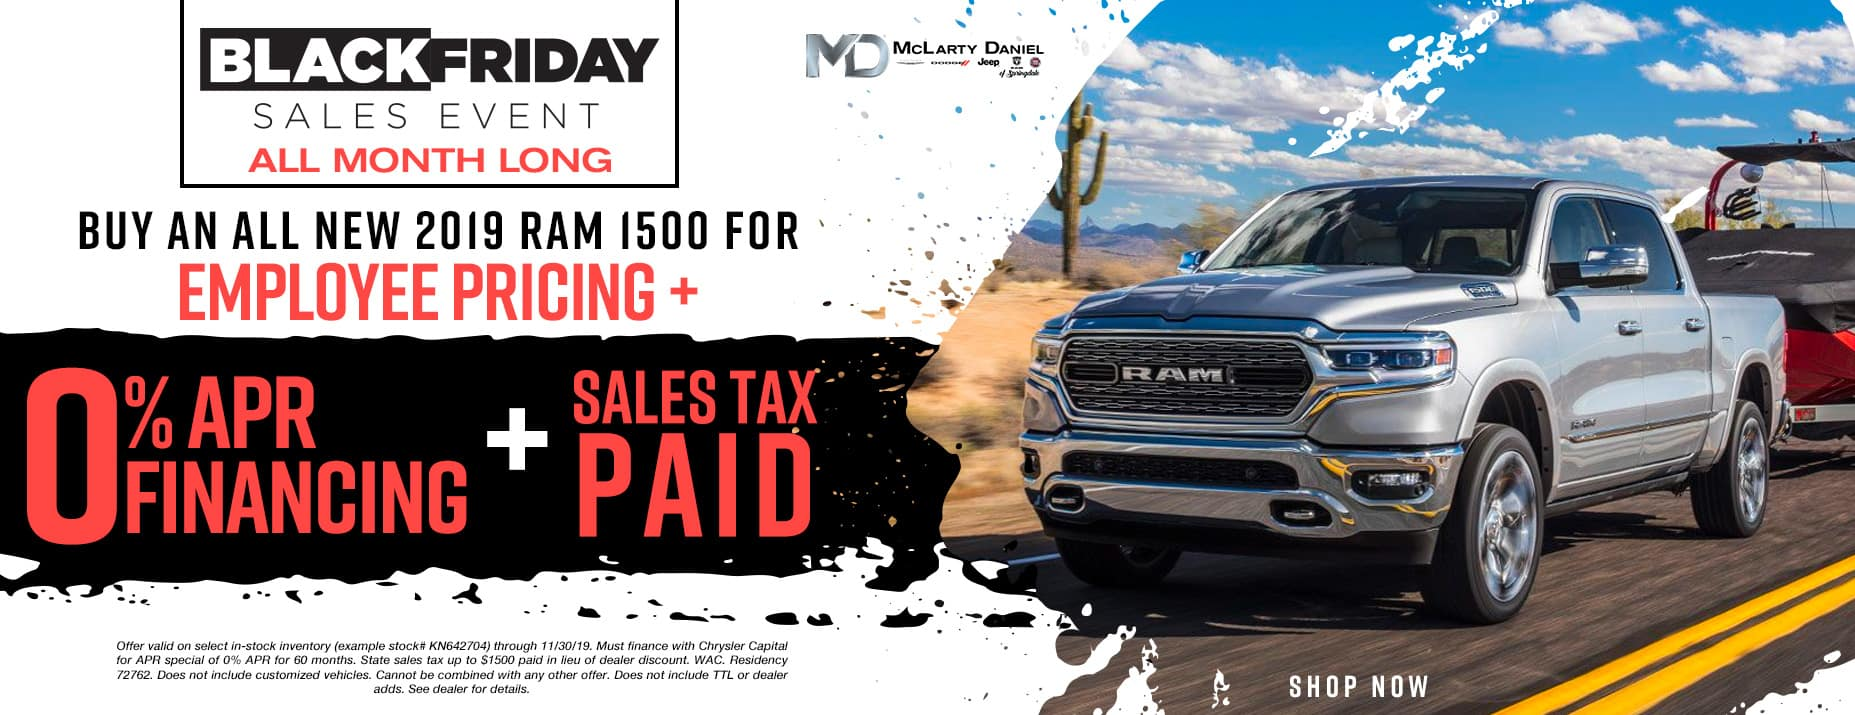 EMPLOYEE PRICING FOR EVERYONE! BUY AN ALL NEW 2019 RAM 1500 FOR EMPLOYEE PRICING -PLUS- 0% APR -PLUS- SALES TAX PAID!